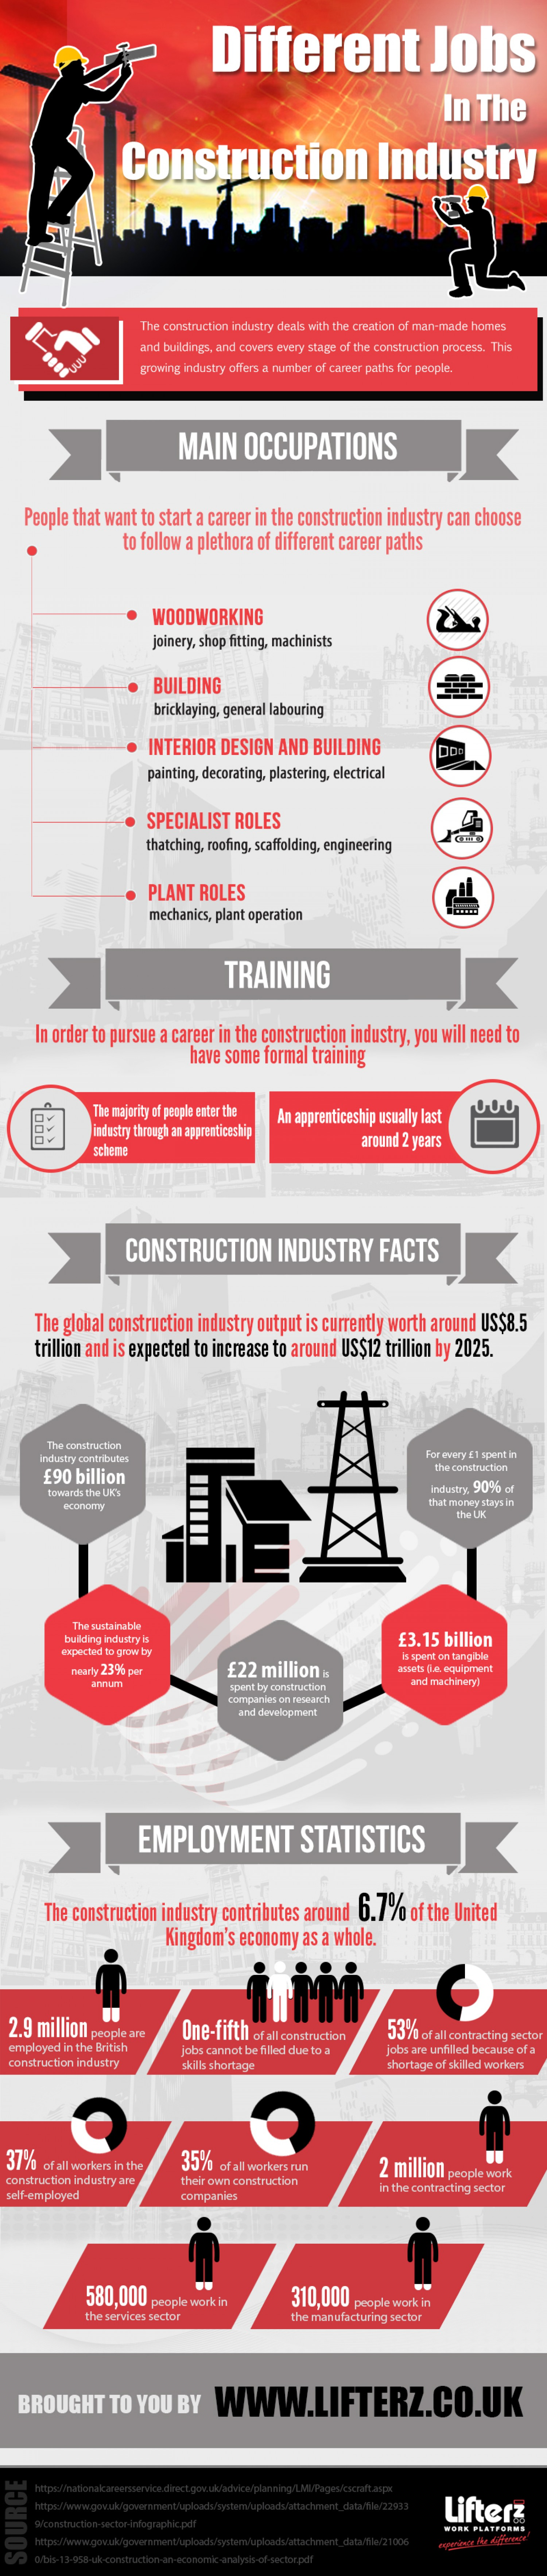 different-jobs-in-the-construction-industry